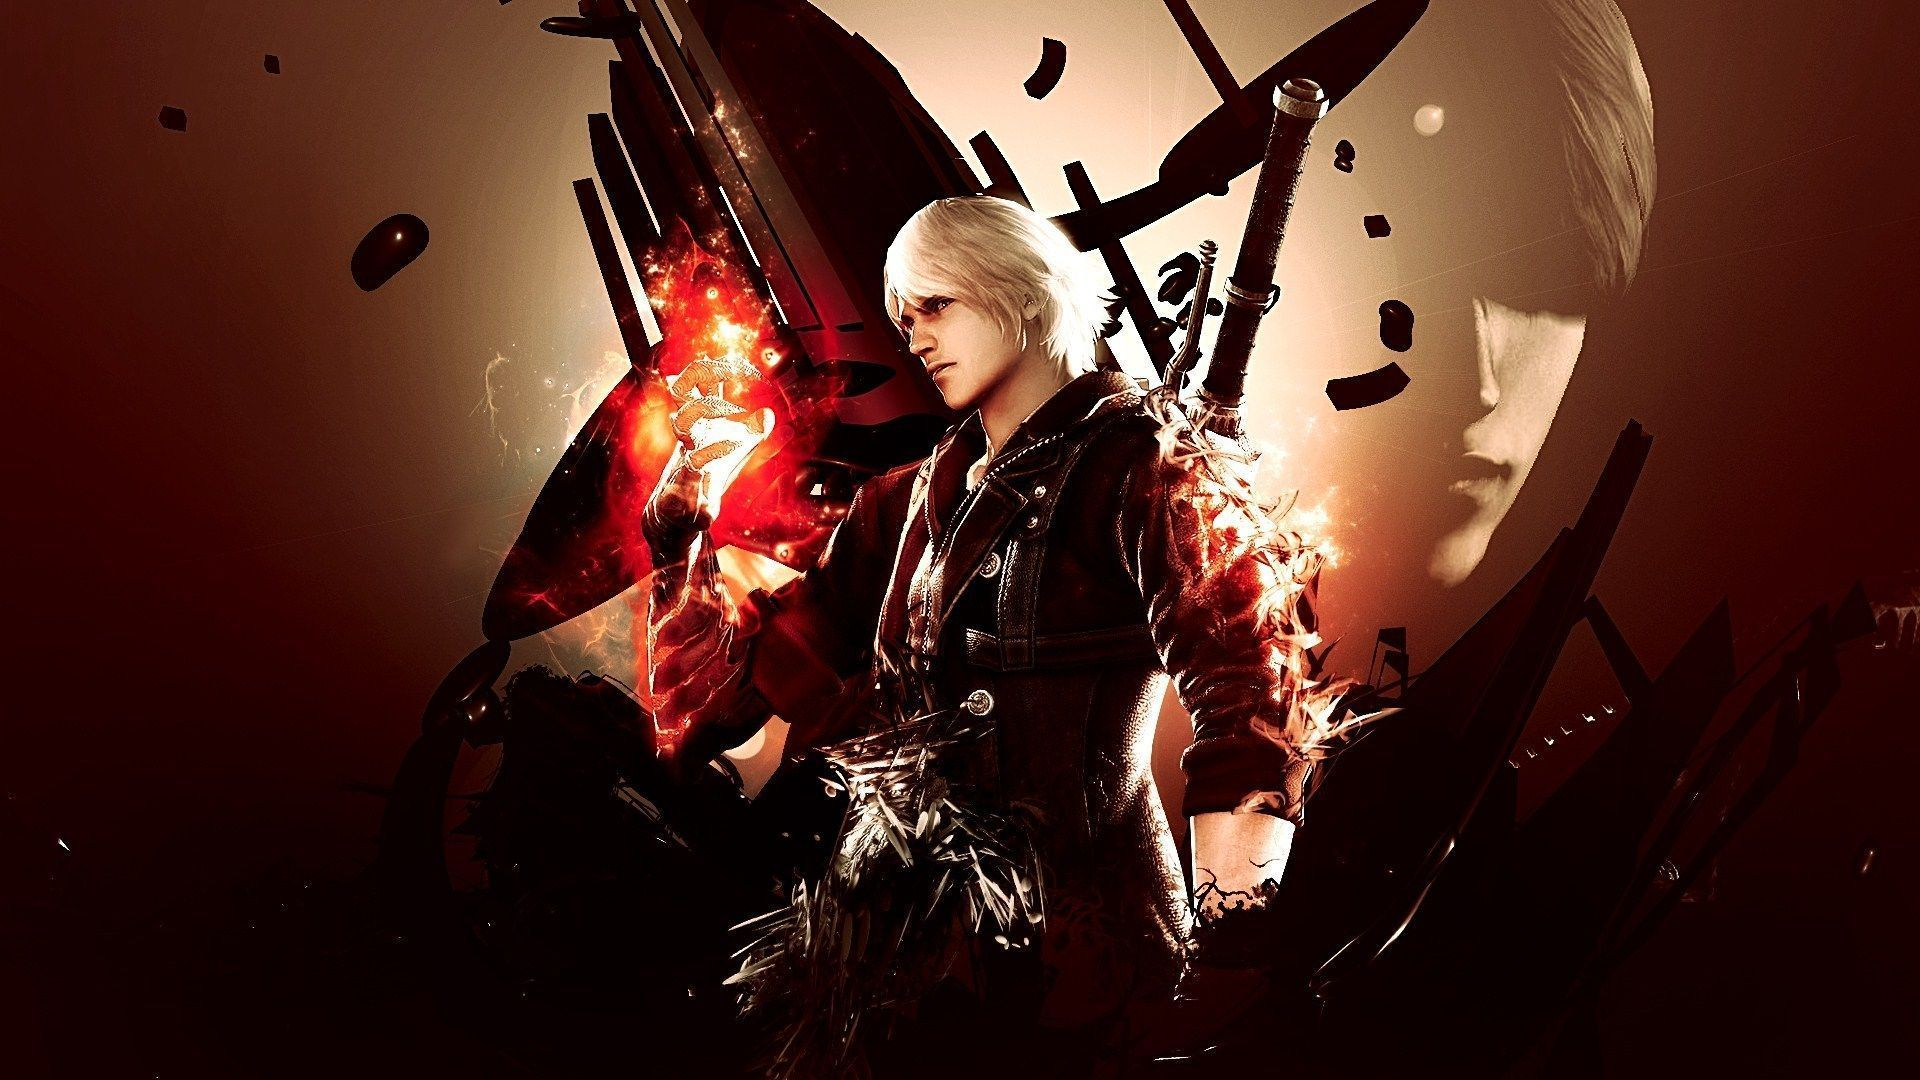 Devil may cry 4 google pinterest crying devil may cry wallpaper wallpapers devil cry wallpapers wallpaper desktop on may hd for iphone devil may cry wallpaper wallpapers devil may cry wallpaper voltagebd Images